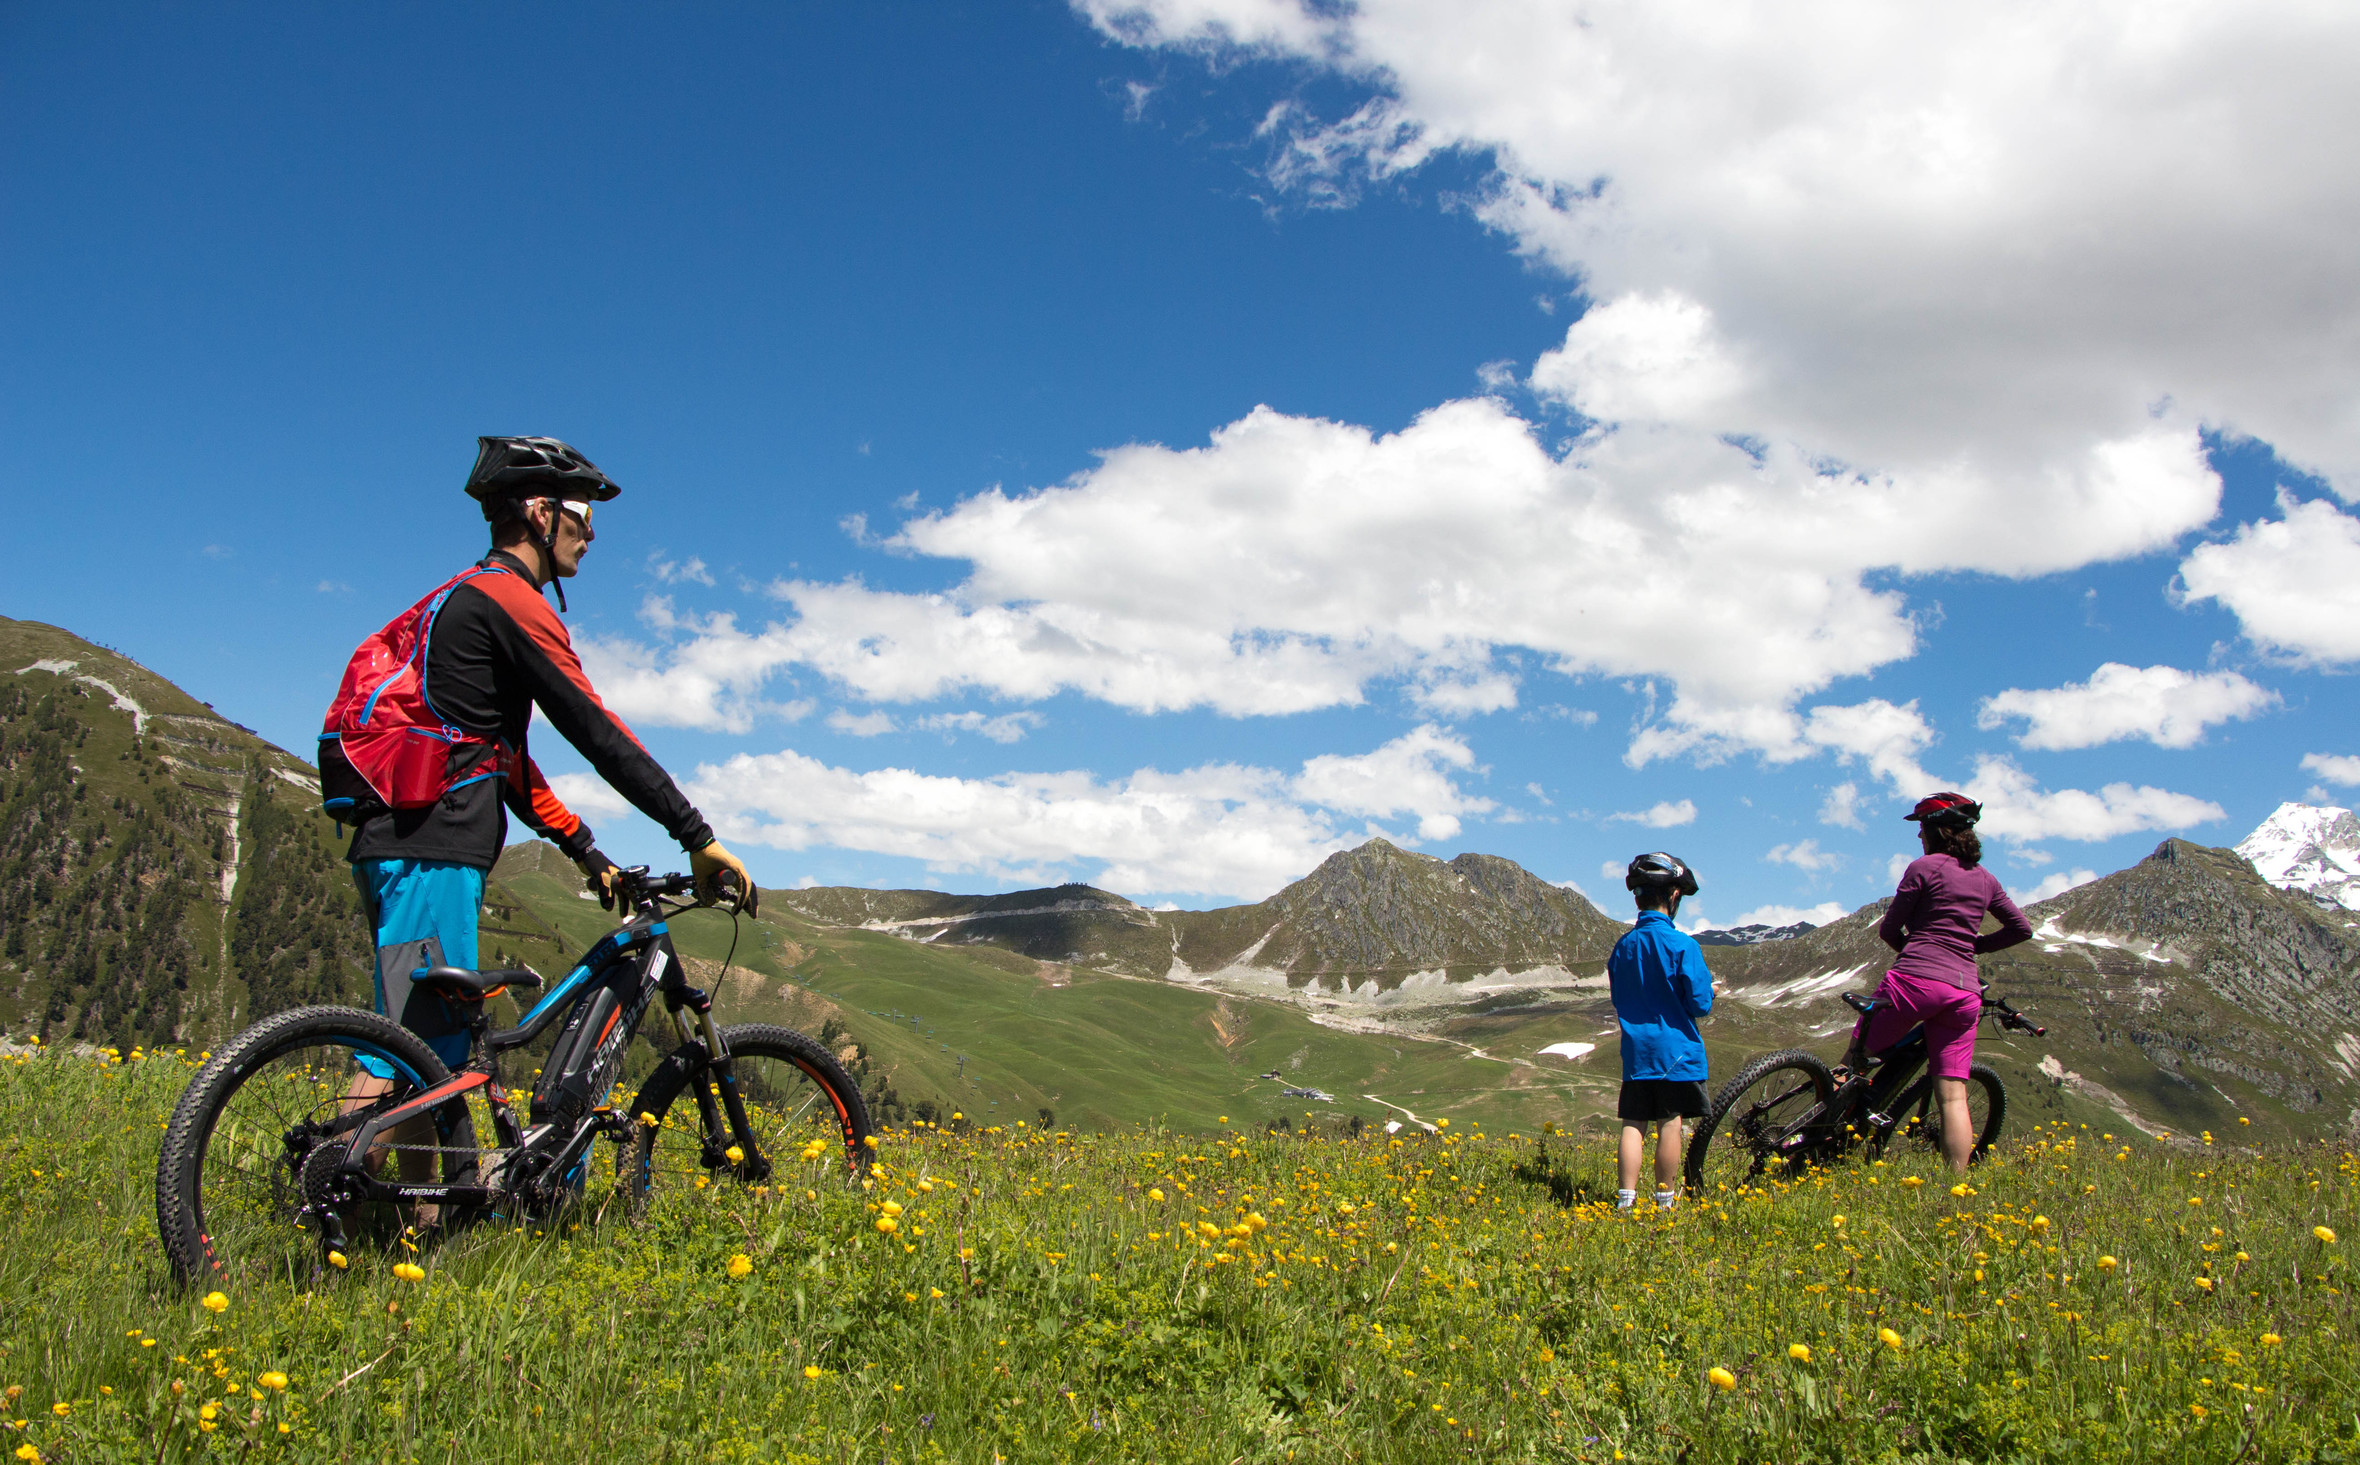 Mountain biking in Montchavin La Plagne